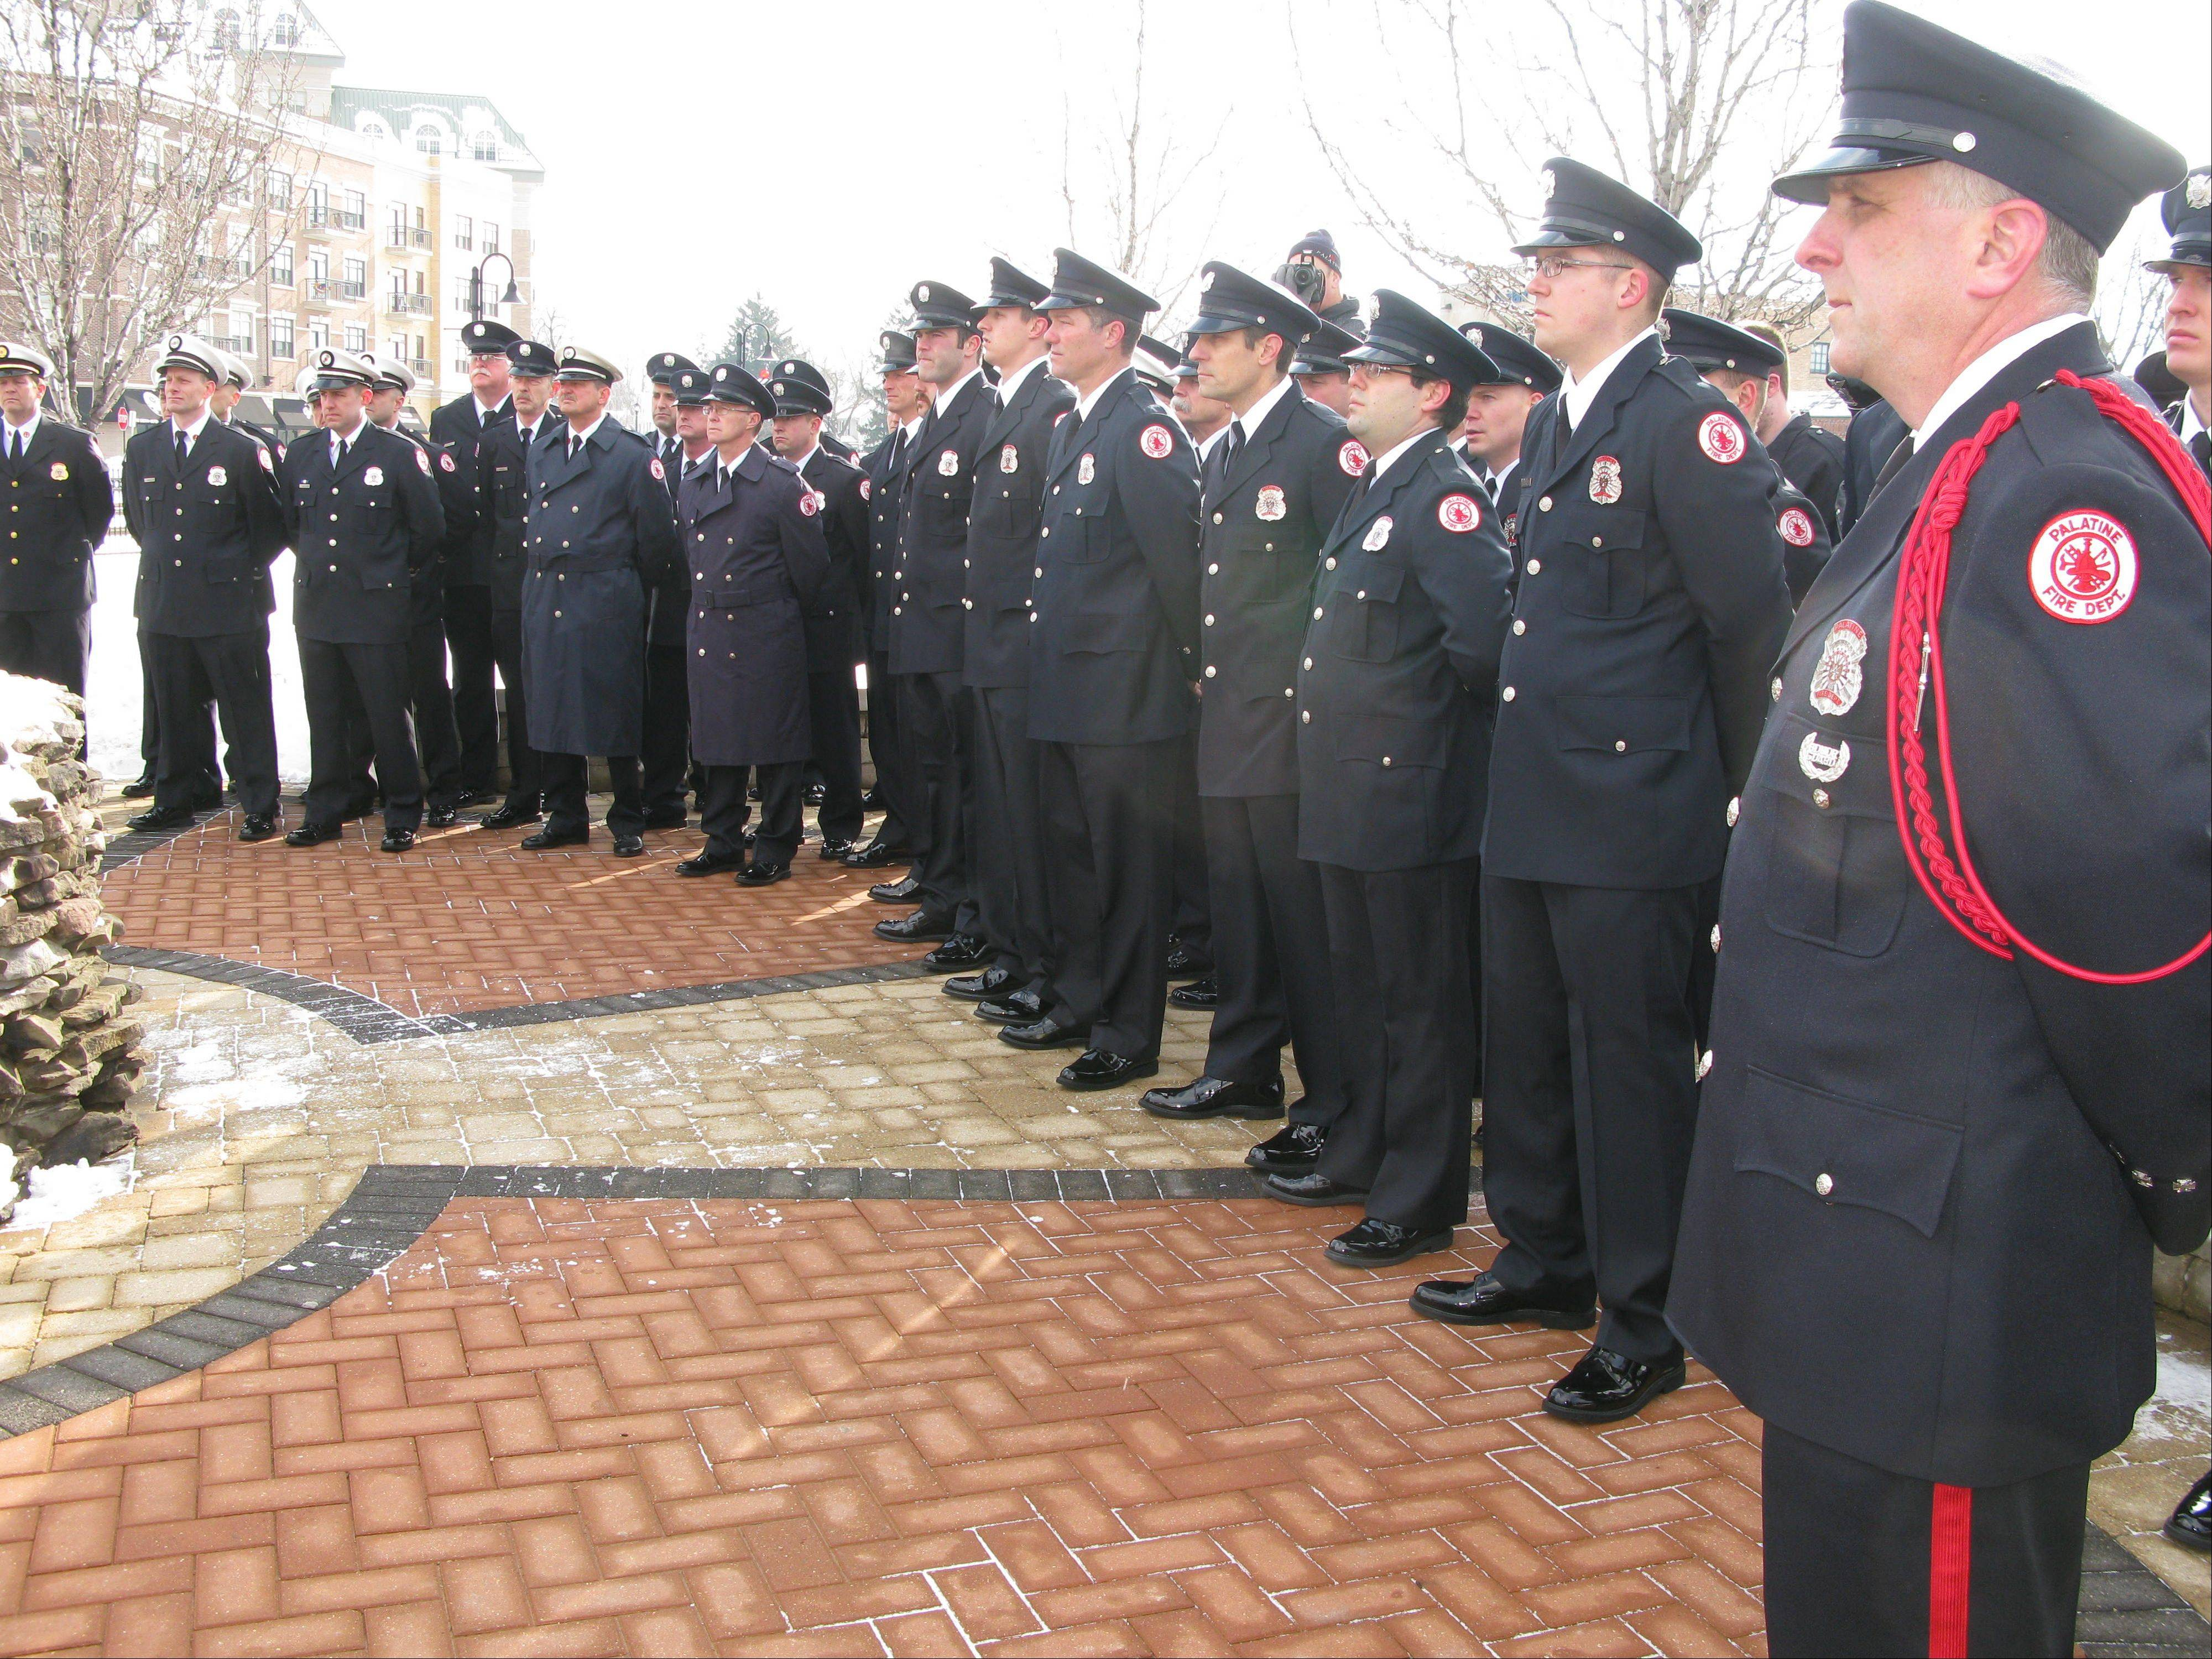 Firefighters from Palatine and other area fire departments stand during a ceremony to honor the memory of three fallen Palatine volunteer firefighters Saturday on the 40th anniversary of their deaths.